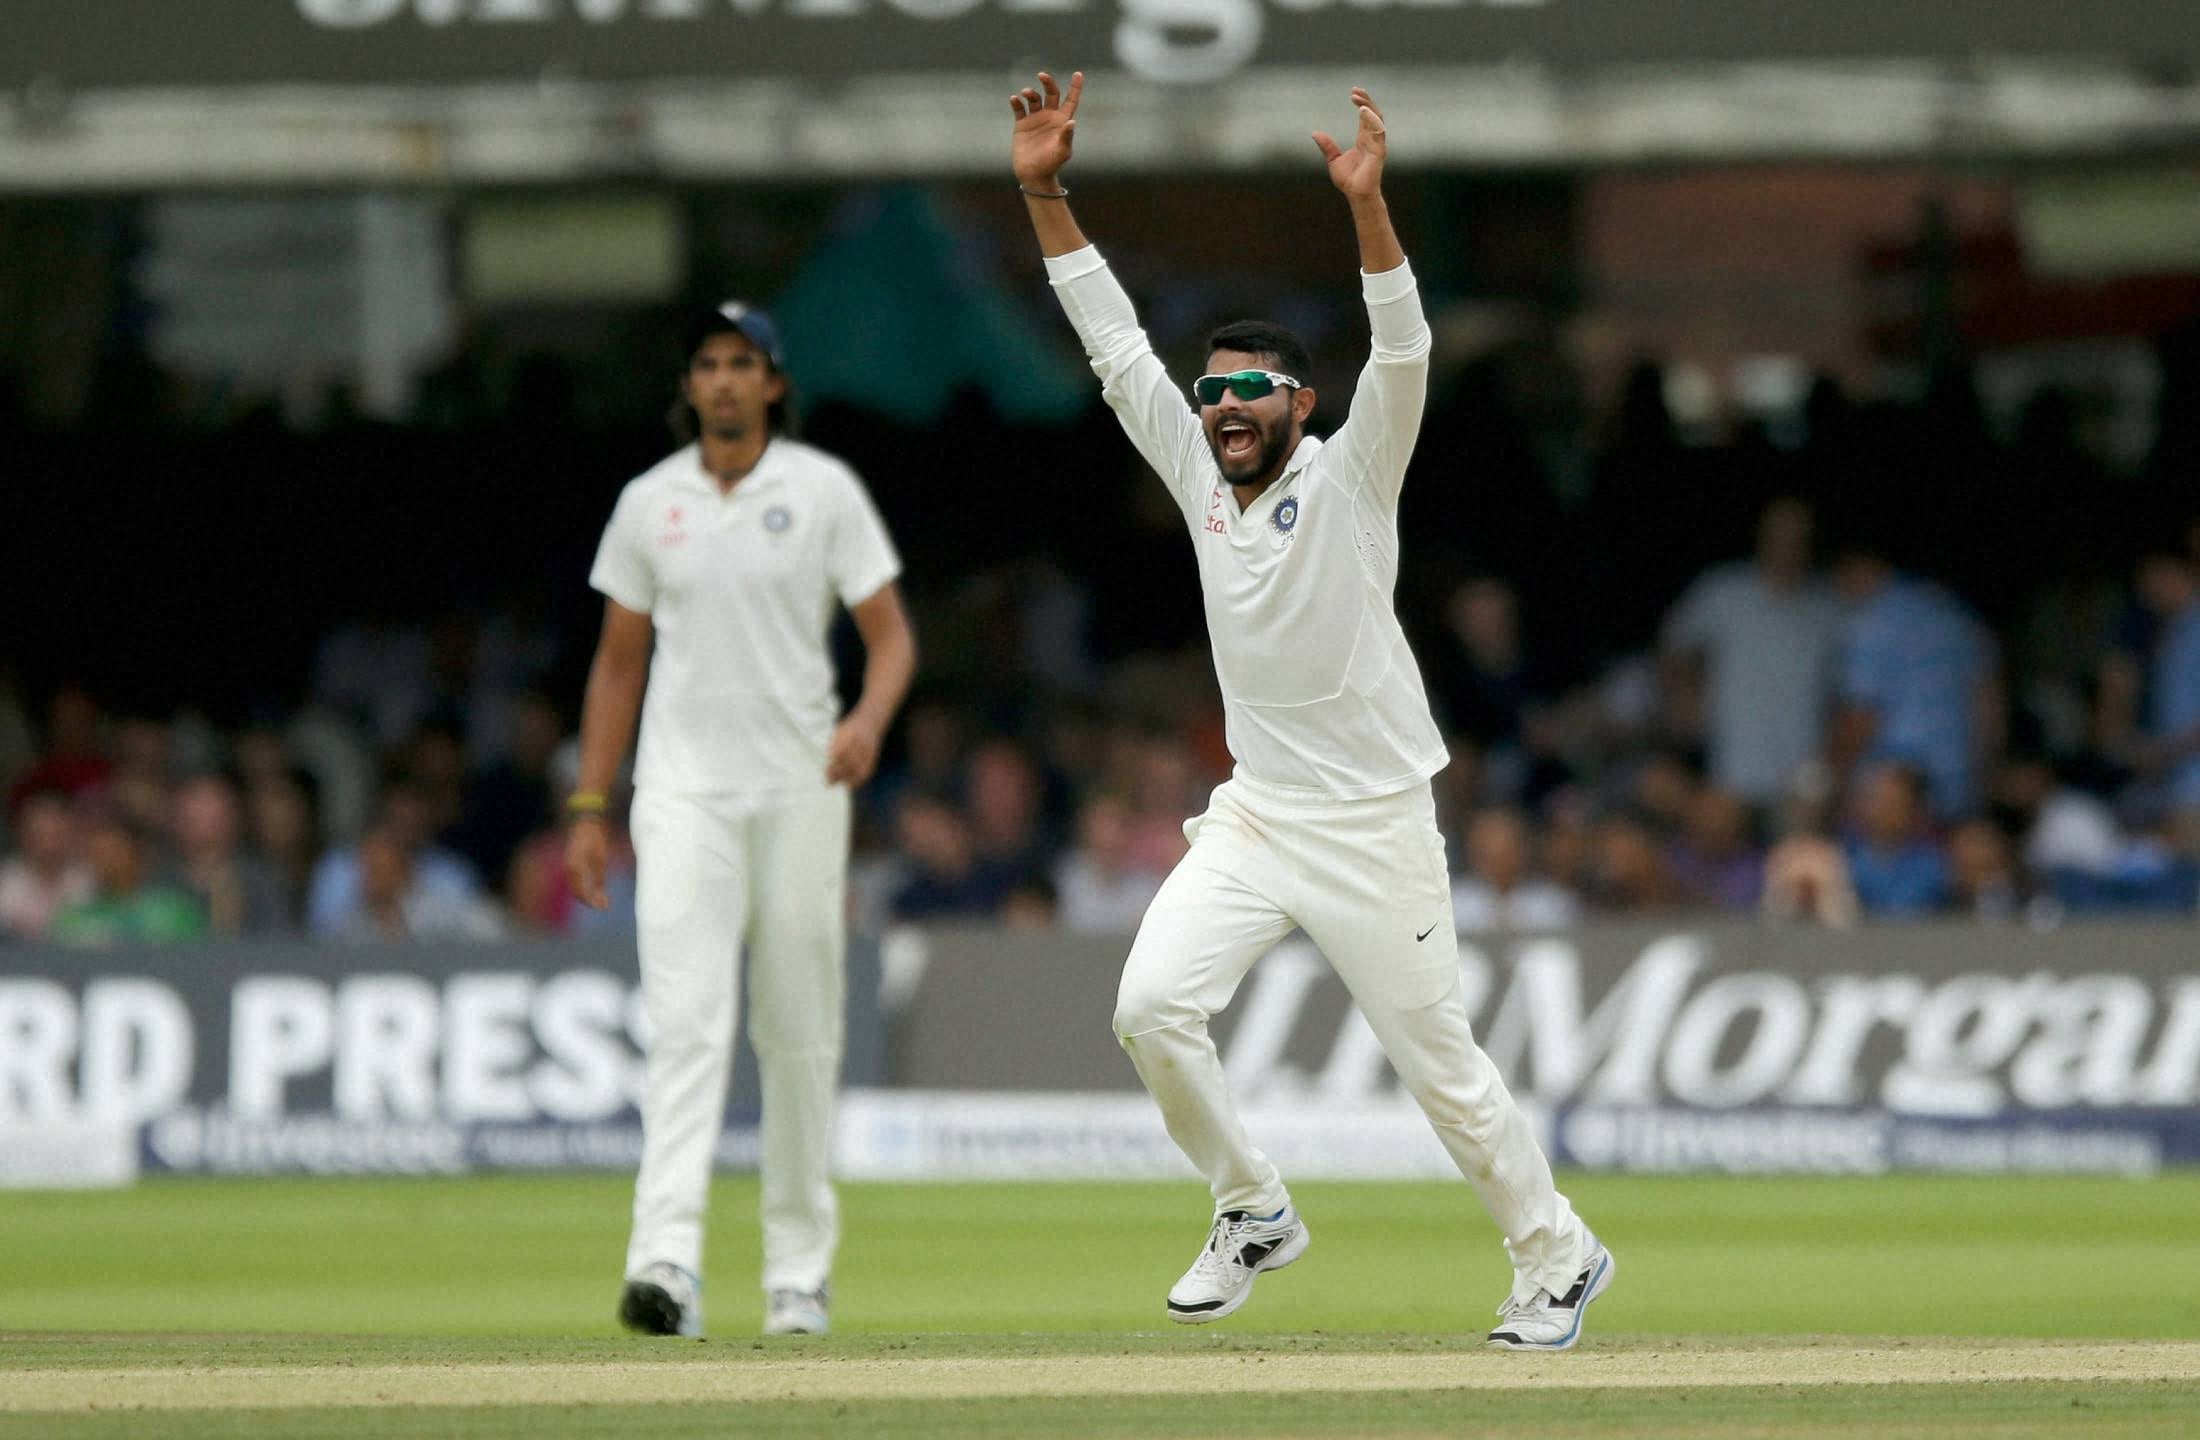 India's Ravindra Jadeja, unsuccessful, wicket, appeal, pitching, delivery, fifth day, second cricket, test match, England, India, Lord's, cricket, ground, London